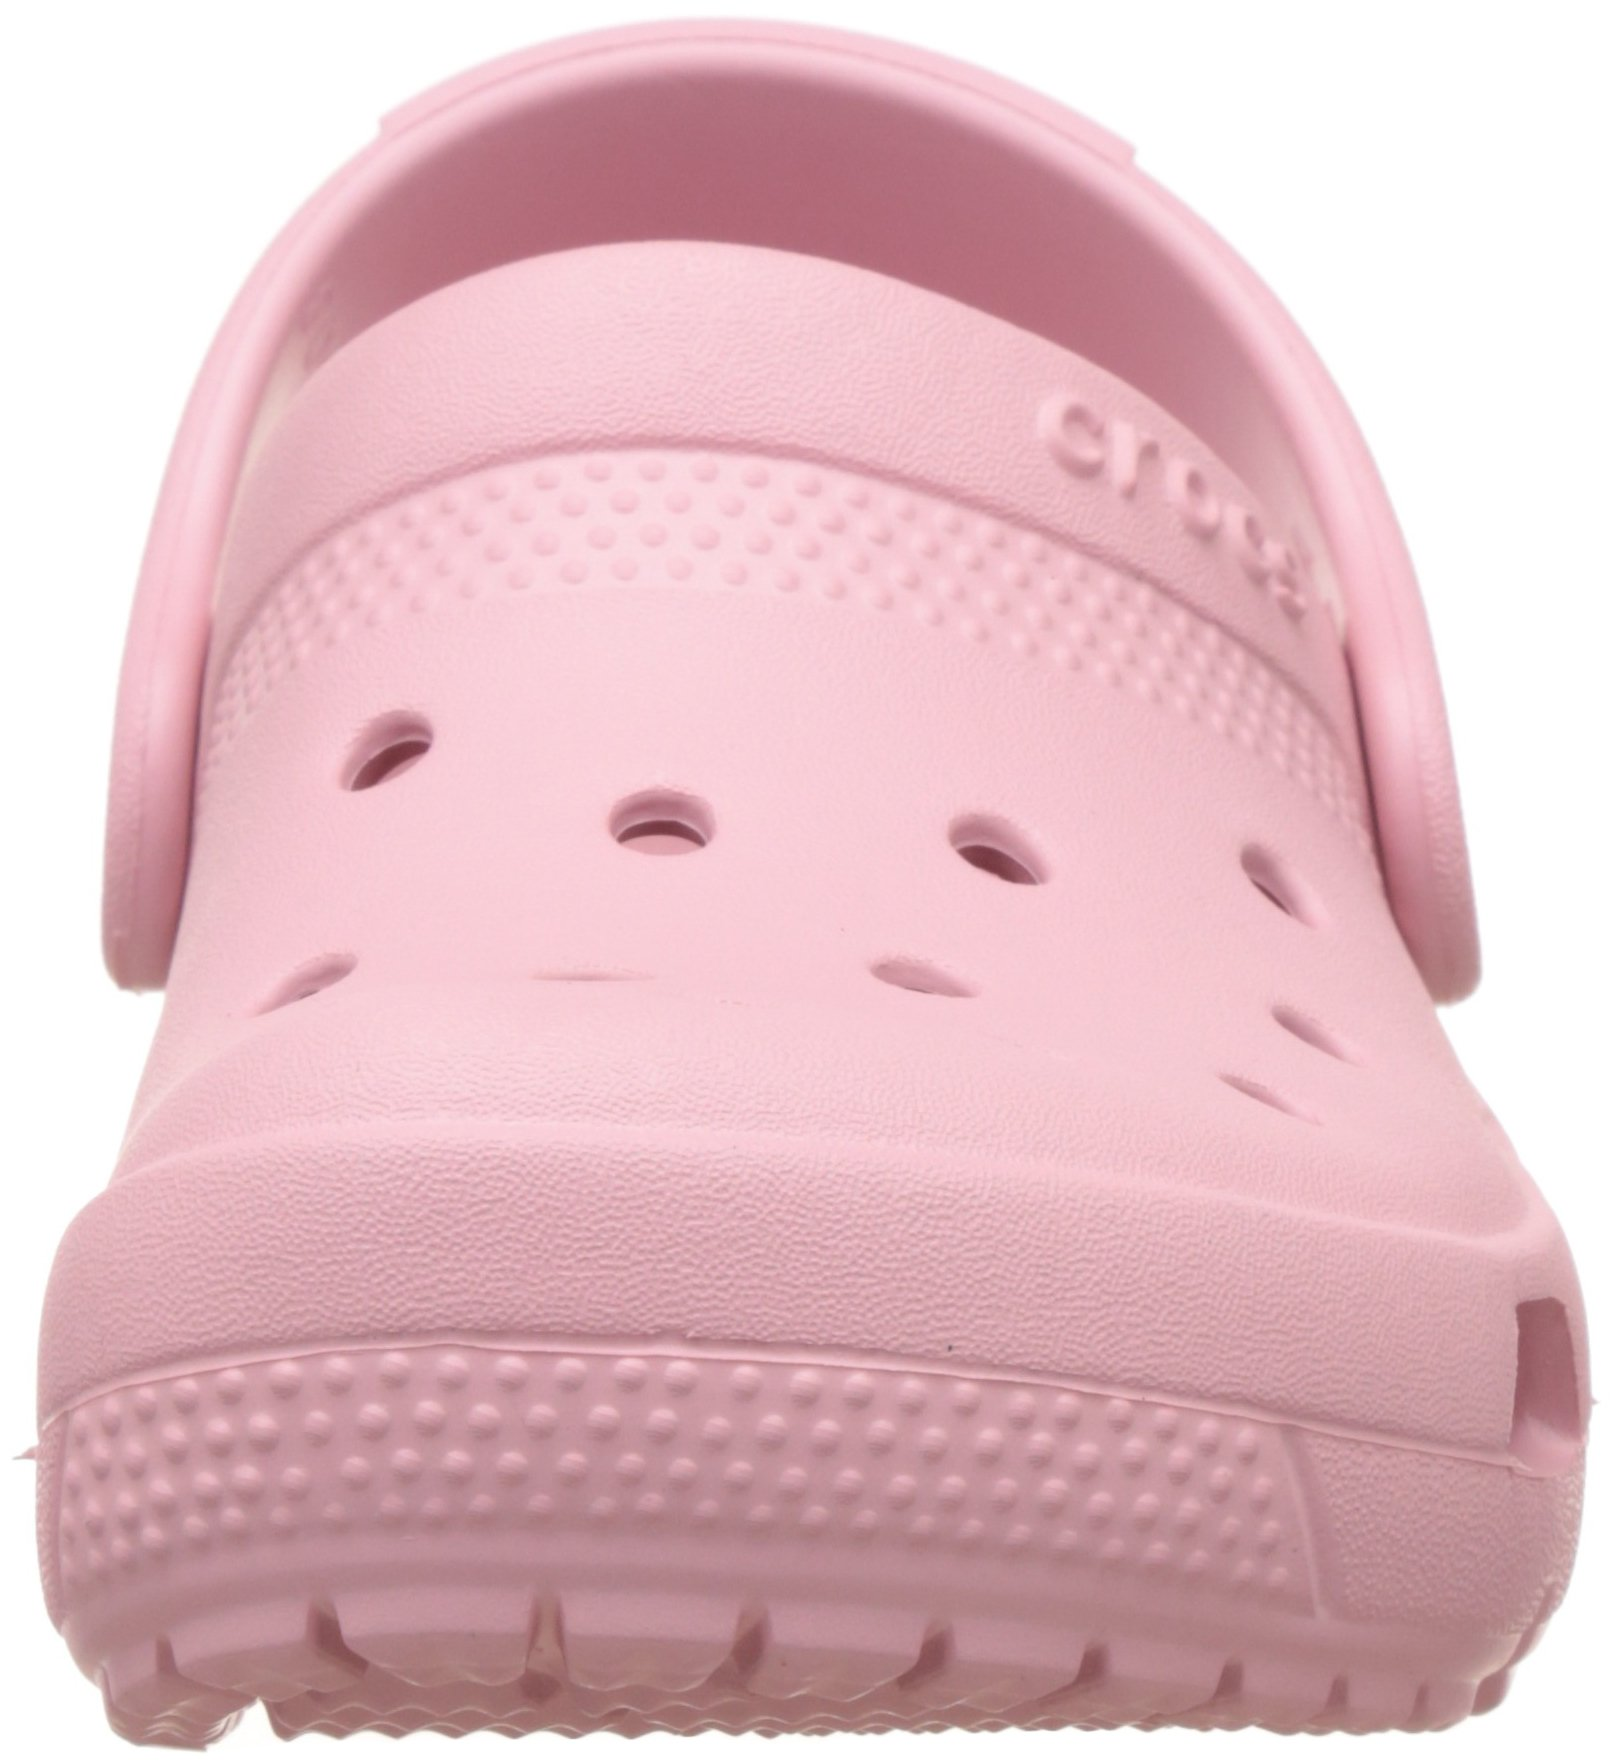 Crocs Kids Unisex Coast Clog (Toddler/Little Kid) Petal Pink 11 M US Little Kid by Crocs (Image #4)